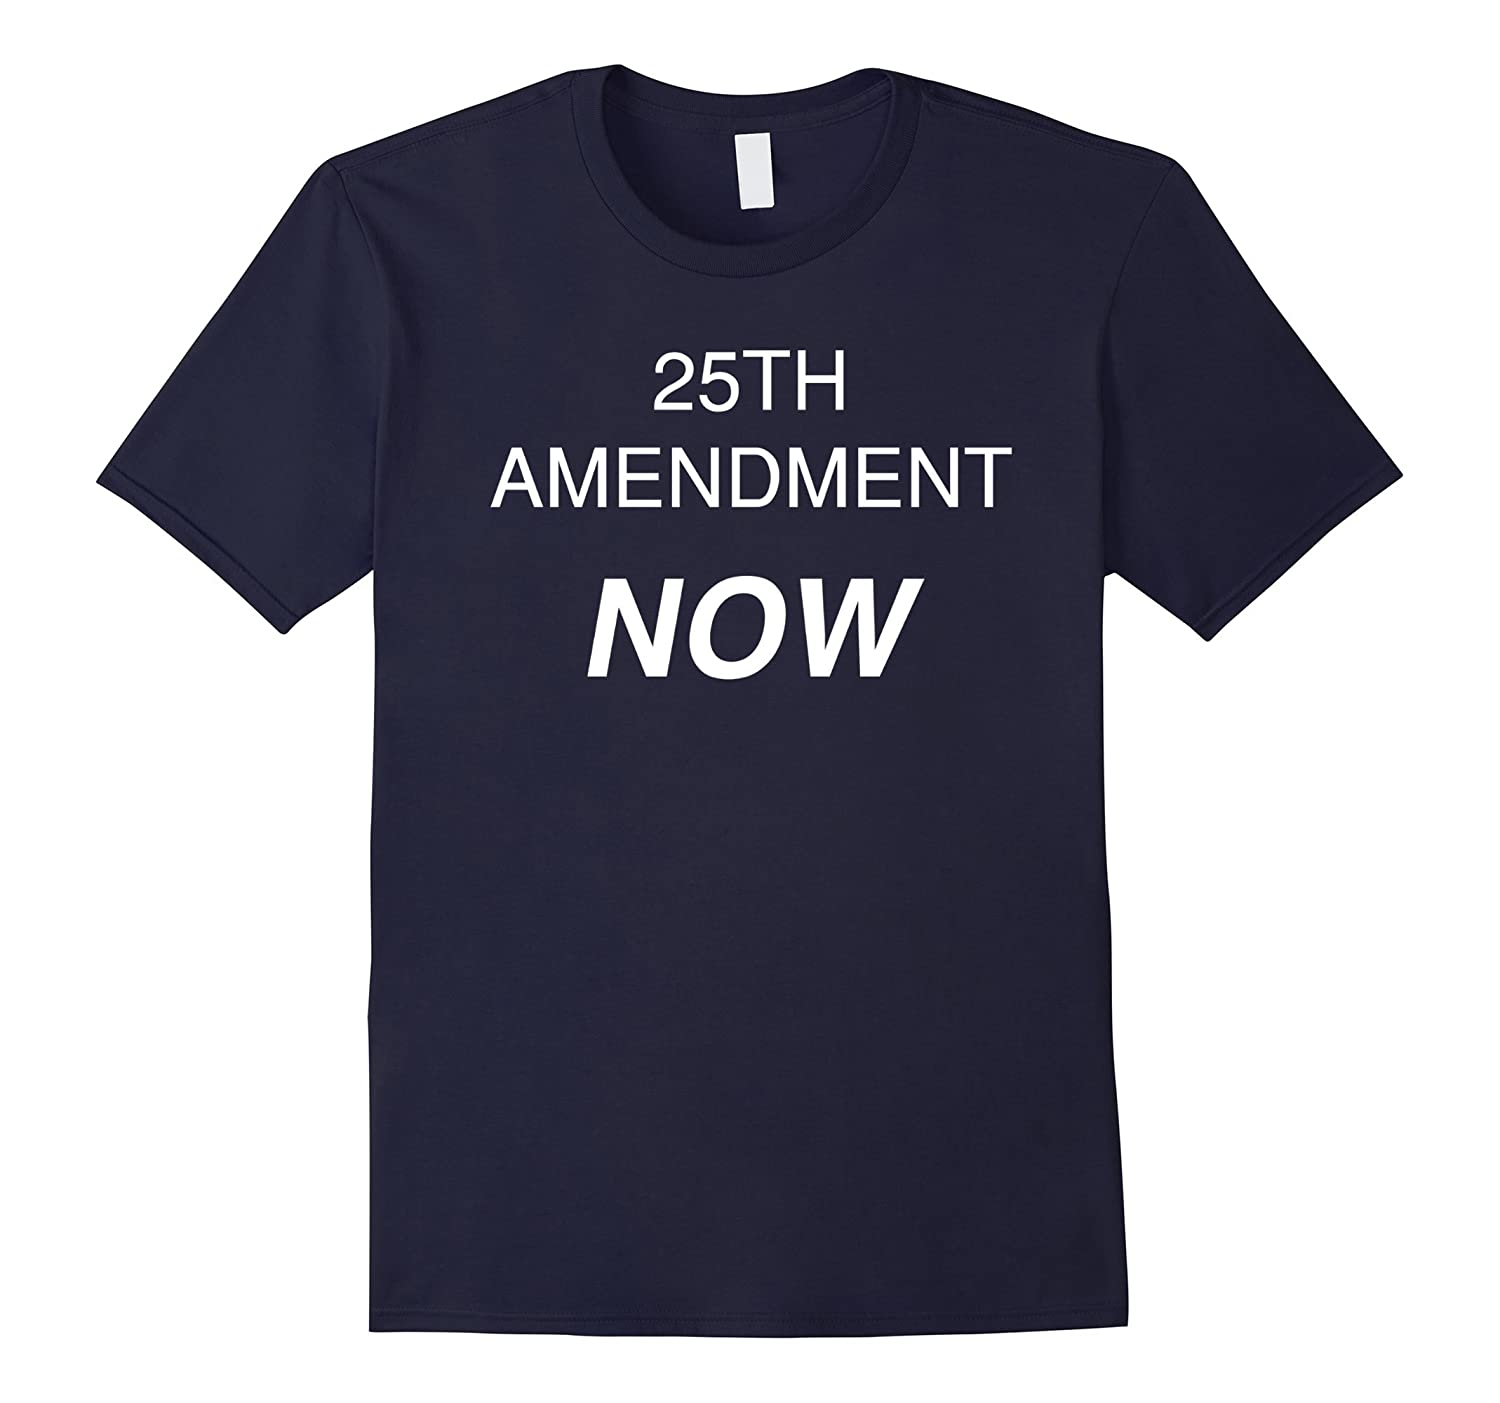 25th Amendment NOW Shirt Design-TH